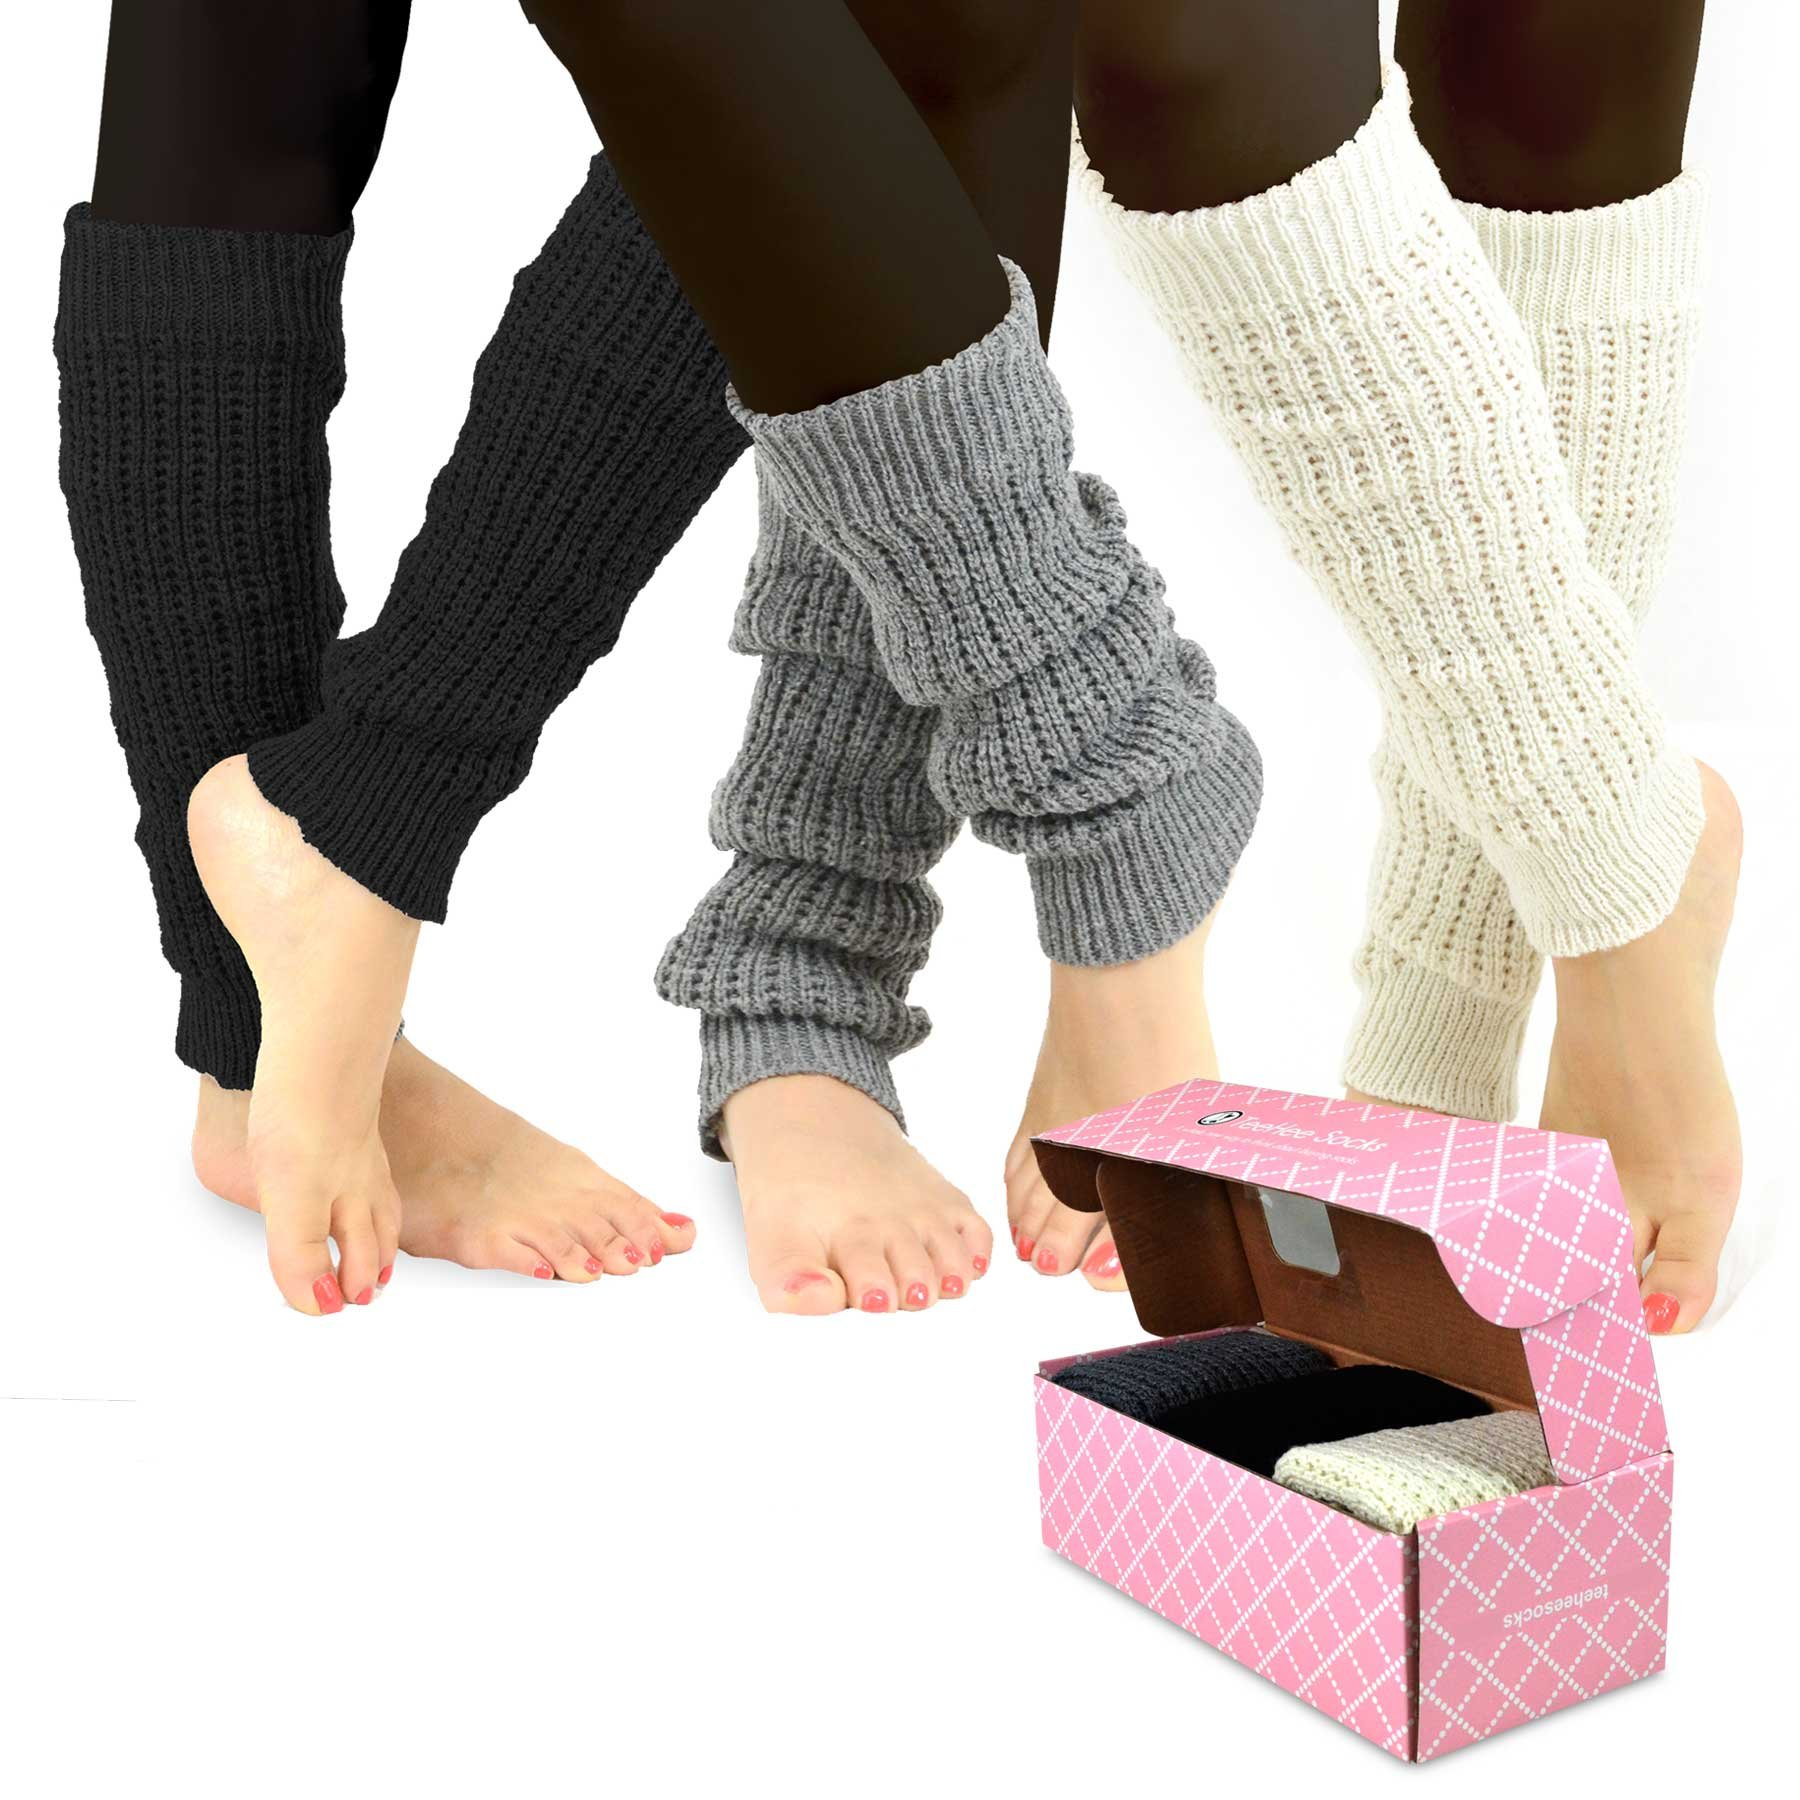 TeeHee Gift Women's Fashion Leg Warmers 3-Pack Assorted Colors (Cable Knit)